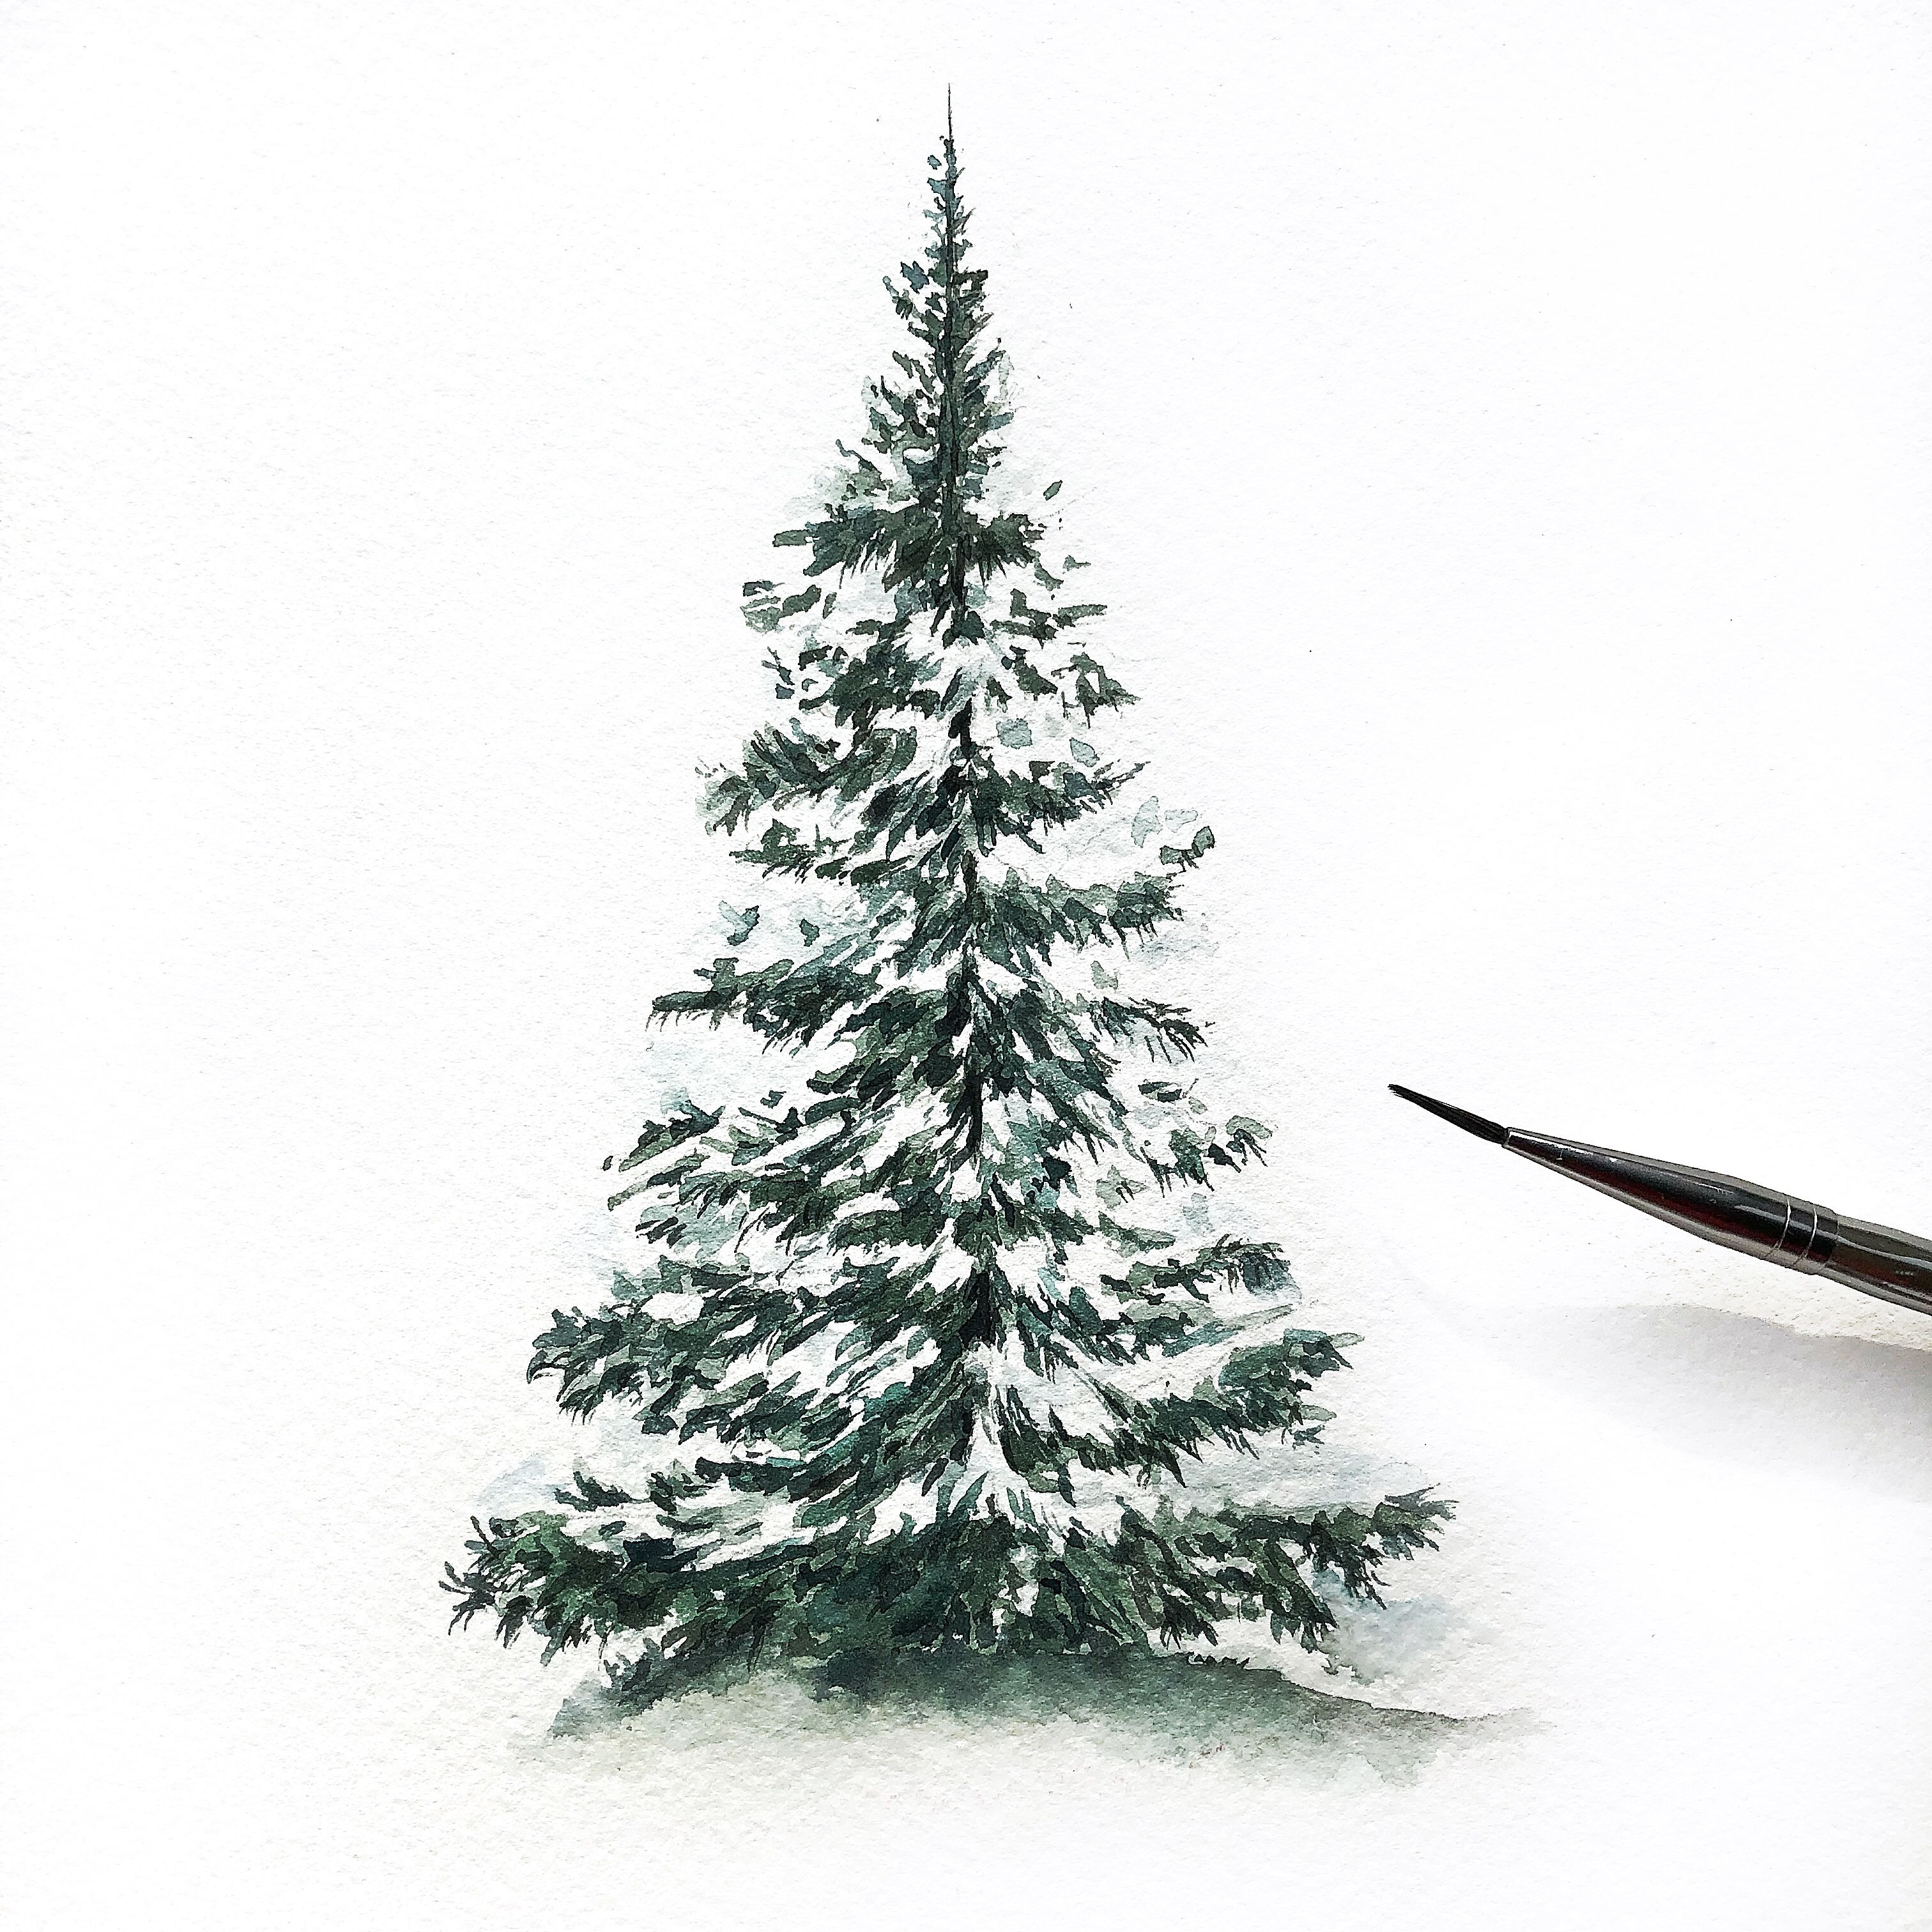 Painting A Snow Covered Pine Tree Using Watercolours The Snow Is